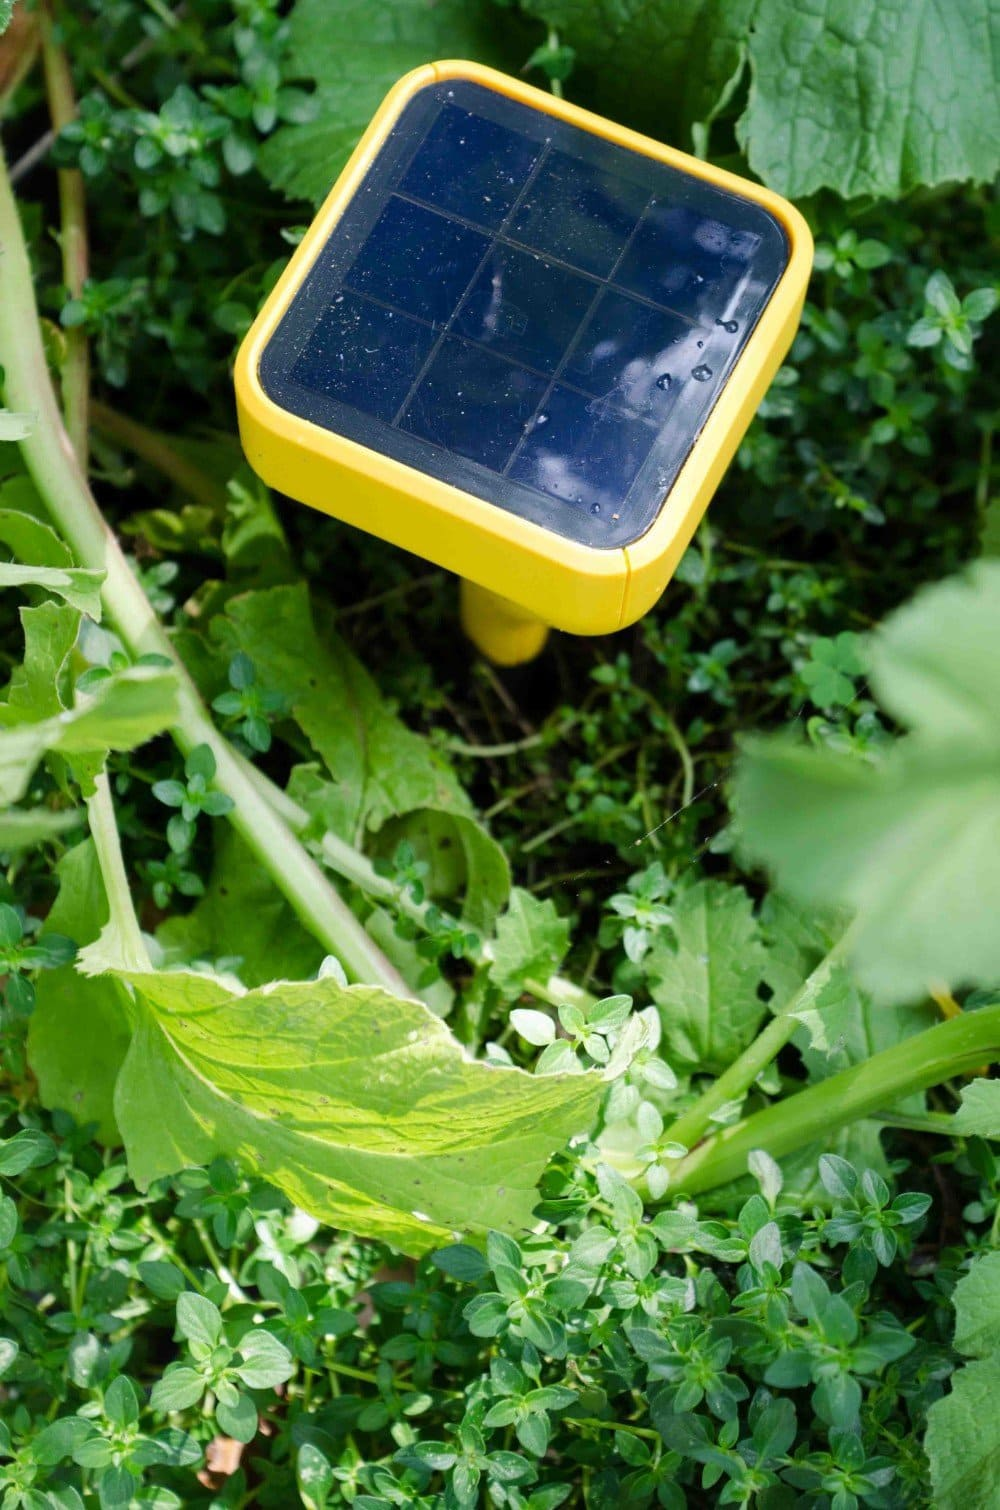 A new garden technology that's changing the way I work in the garden.